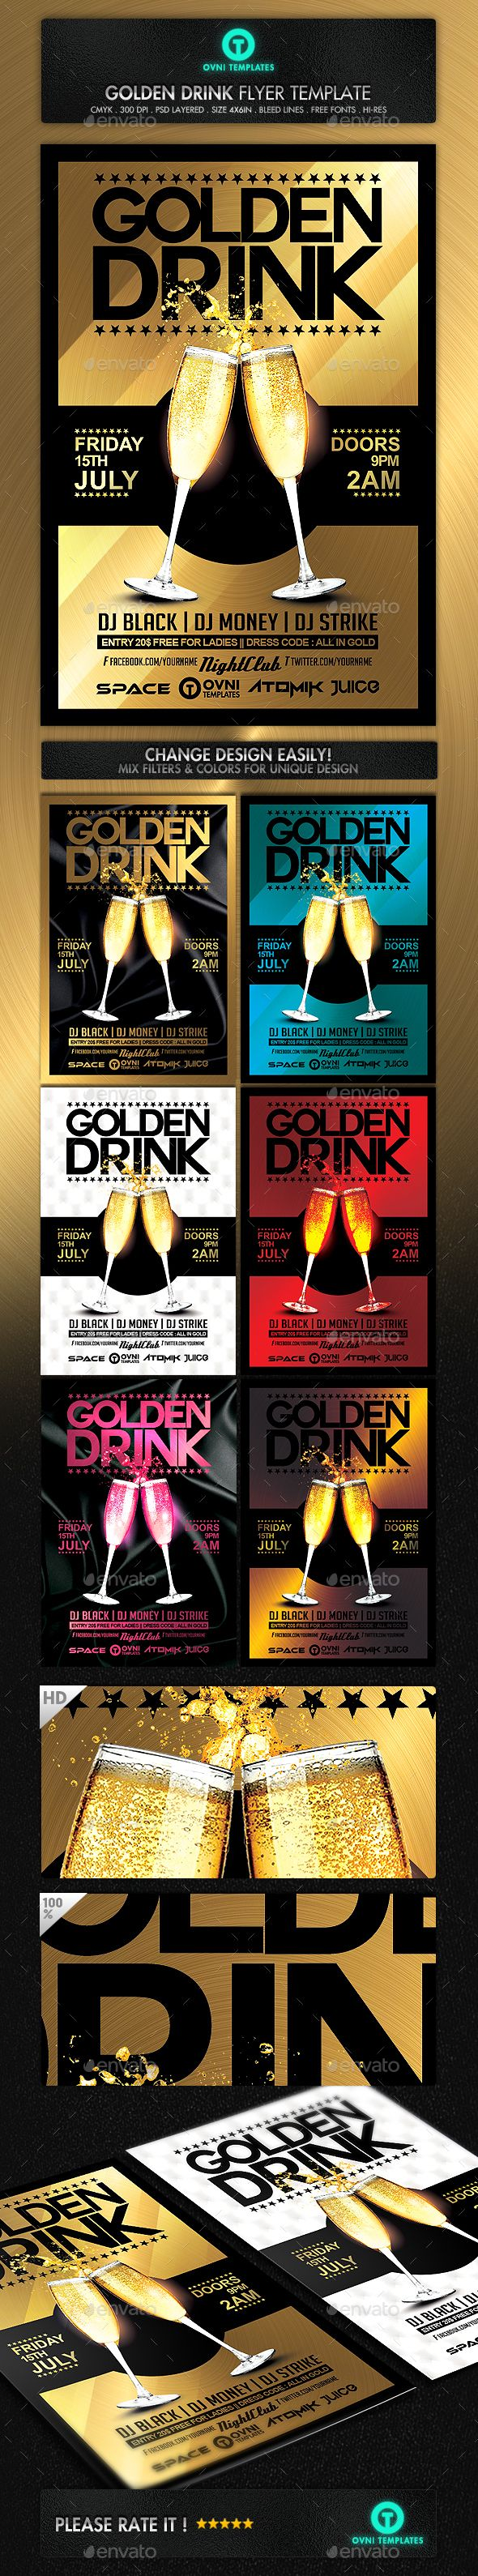 Gold Drink Champagne Flyer Template — Photoshop PSD #clean #fresh • Download here → https://graphicriver.net/item/gold-drink-champagne-flyer-template/14448198?ref=pxcr